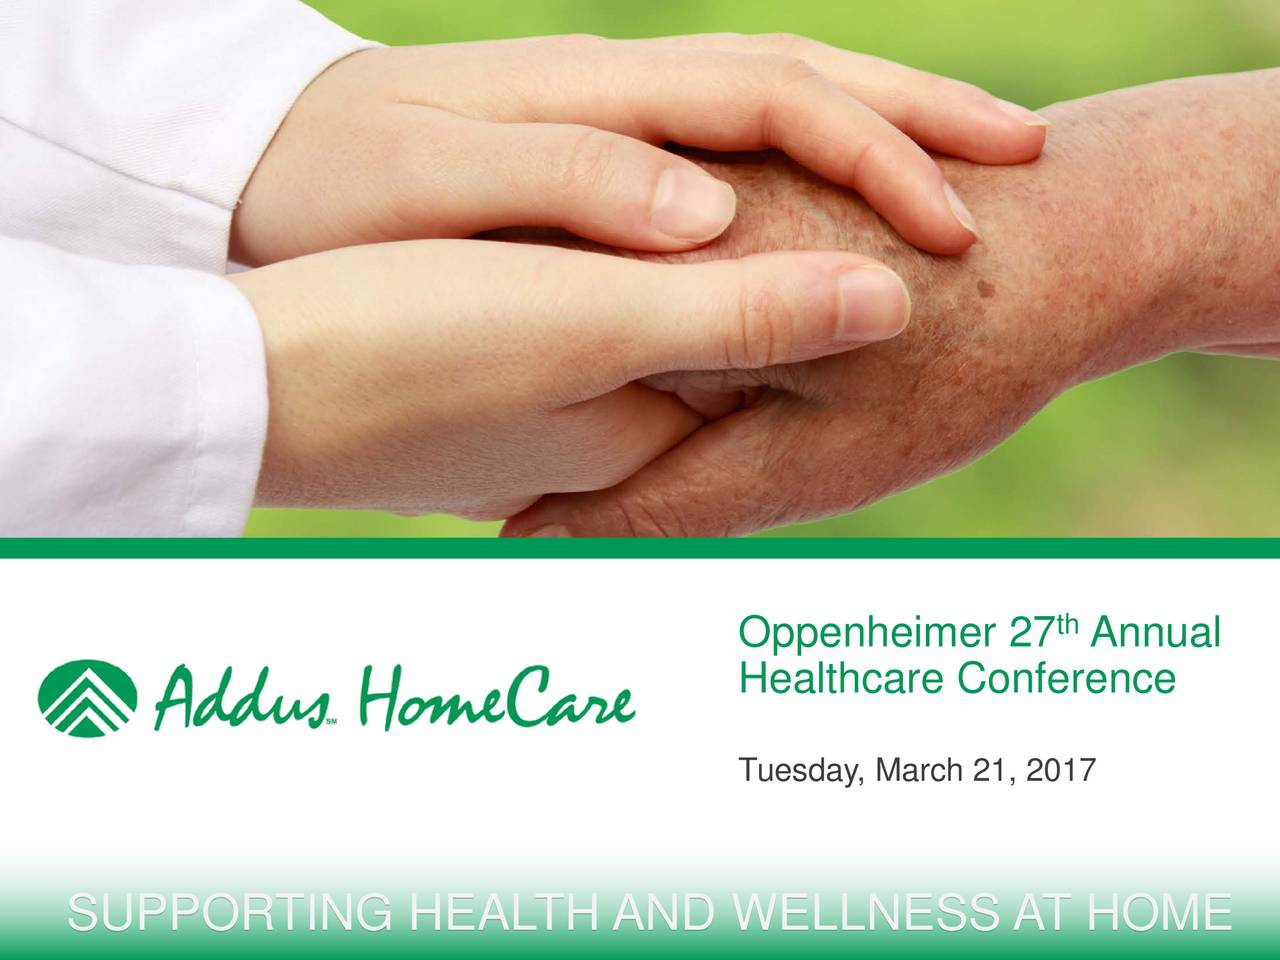 Healthcare Conference Tuesday, March 21, 2017 SUPPORTING HEALTH AND WELLNESS AT HOME